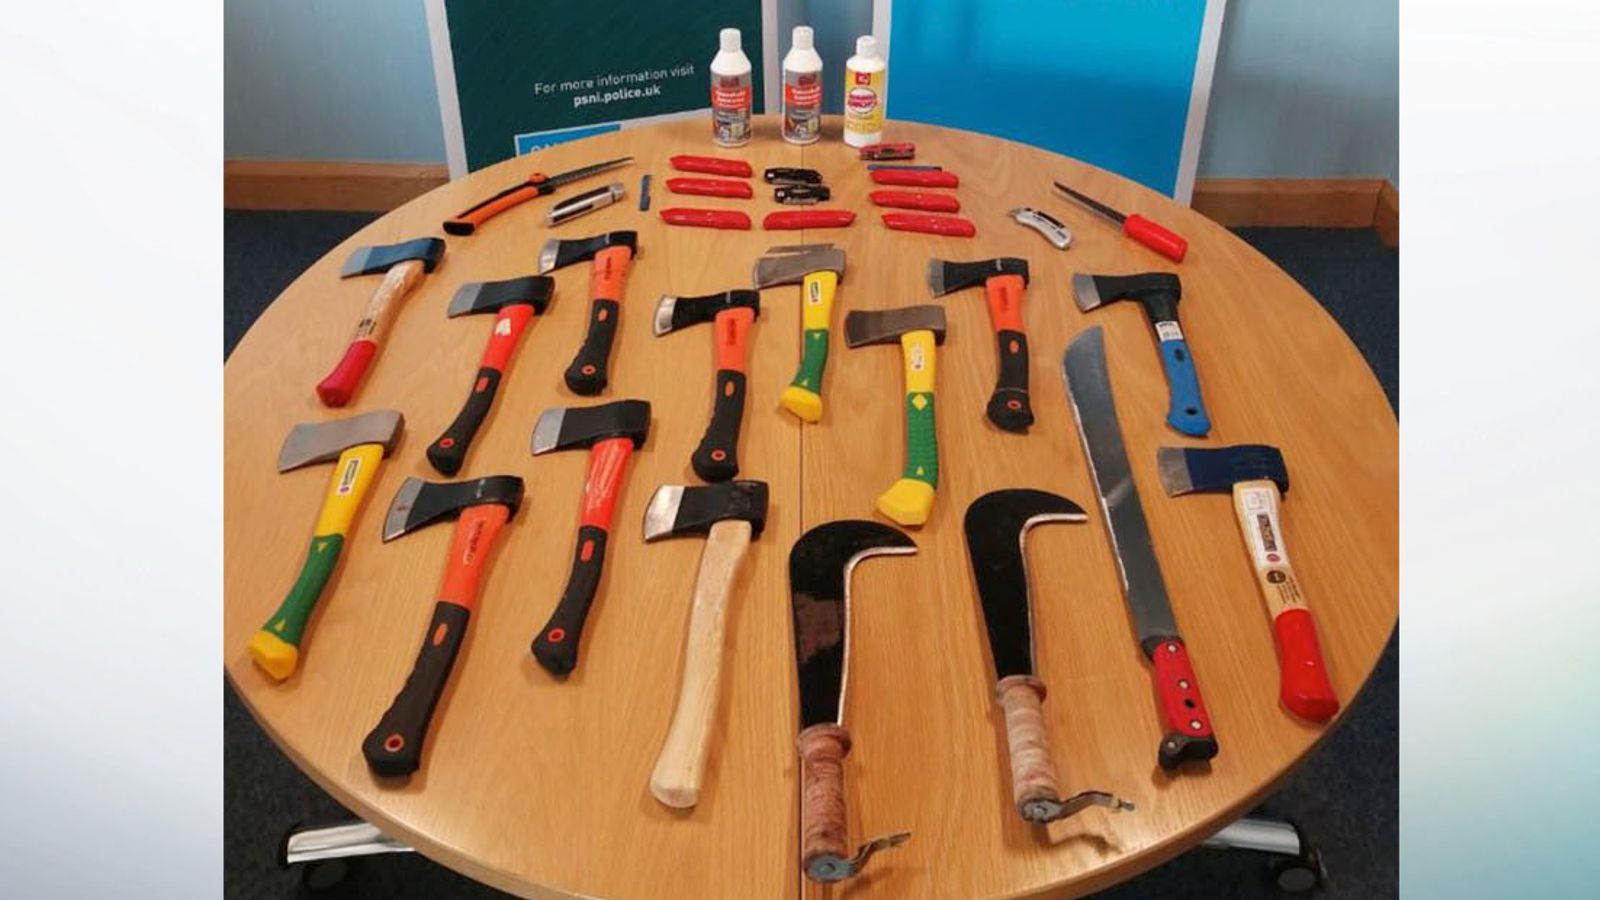 Thirteen hatchets and nine Stanley knives among weapons seized after funeral disturbance